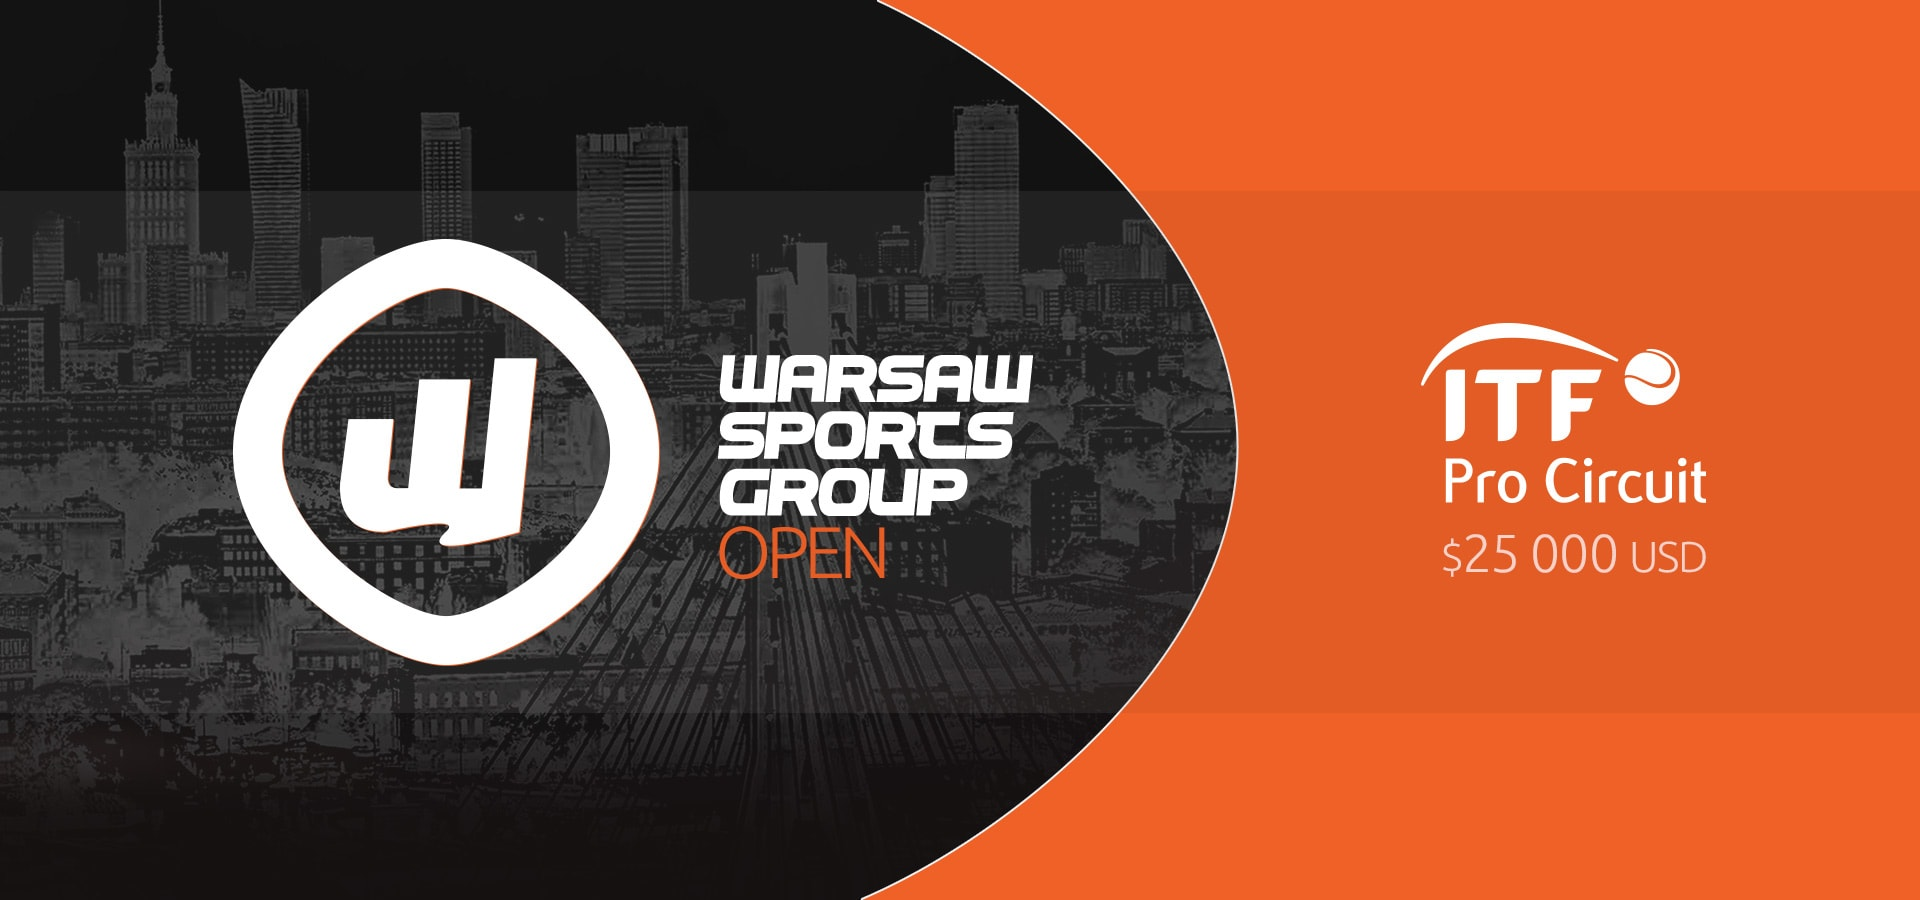 Warsaw Sports Group Open